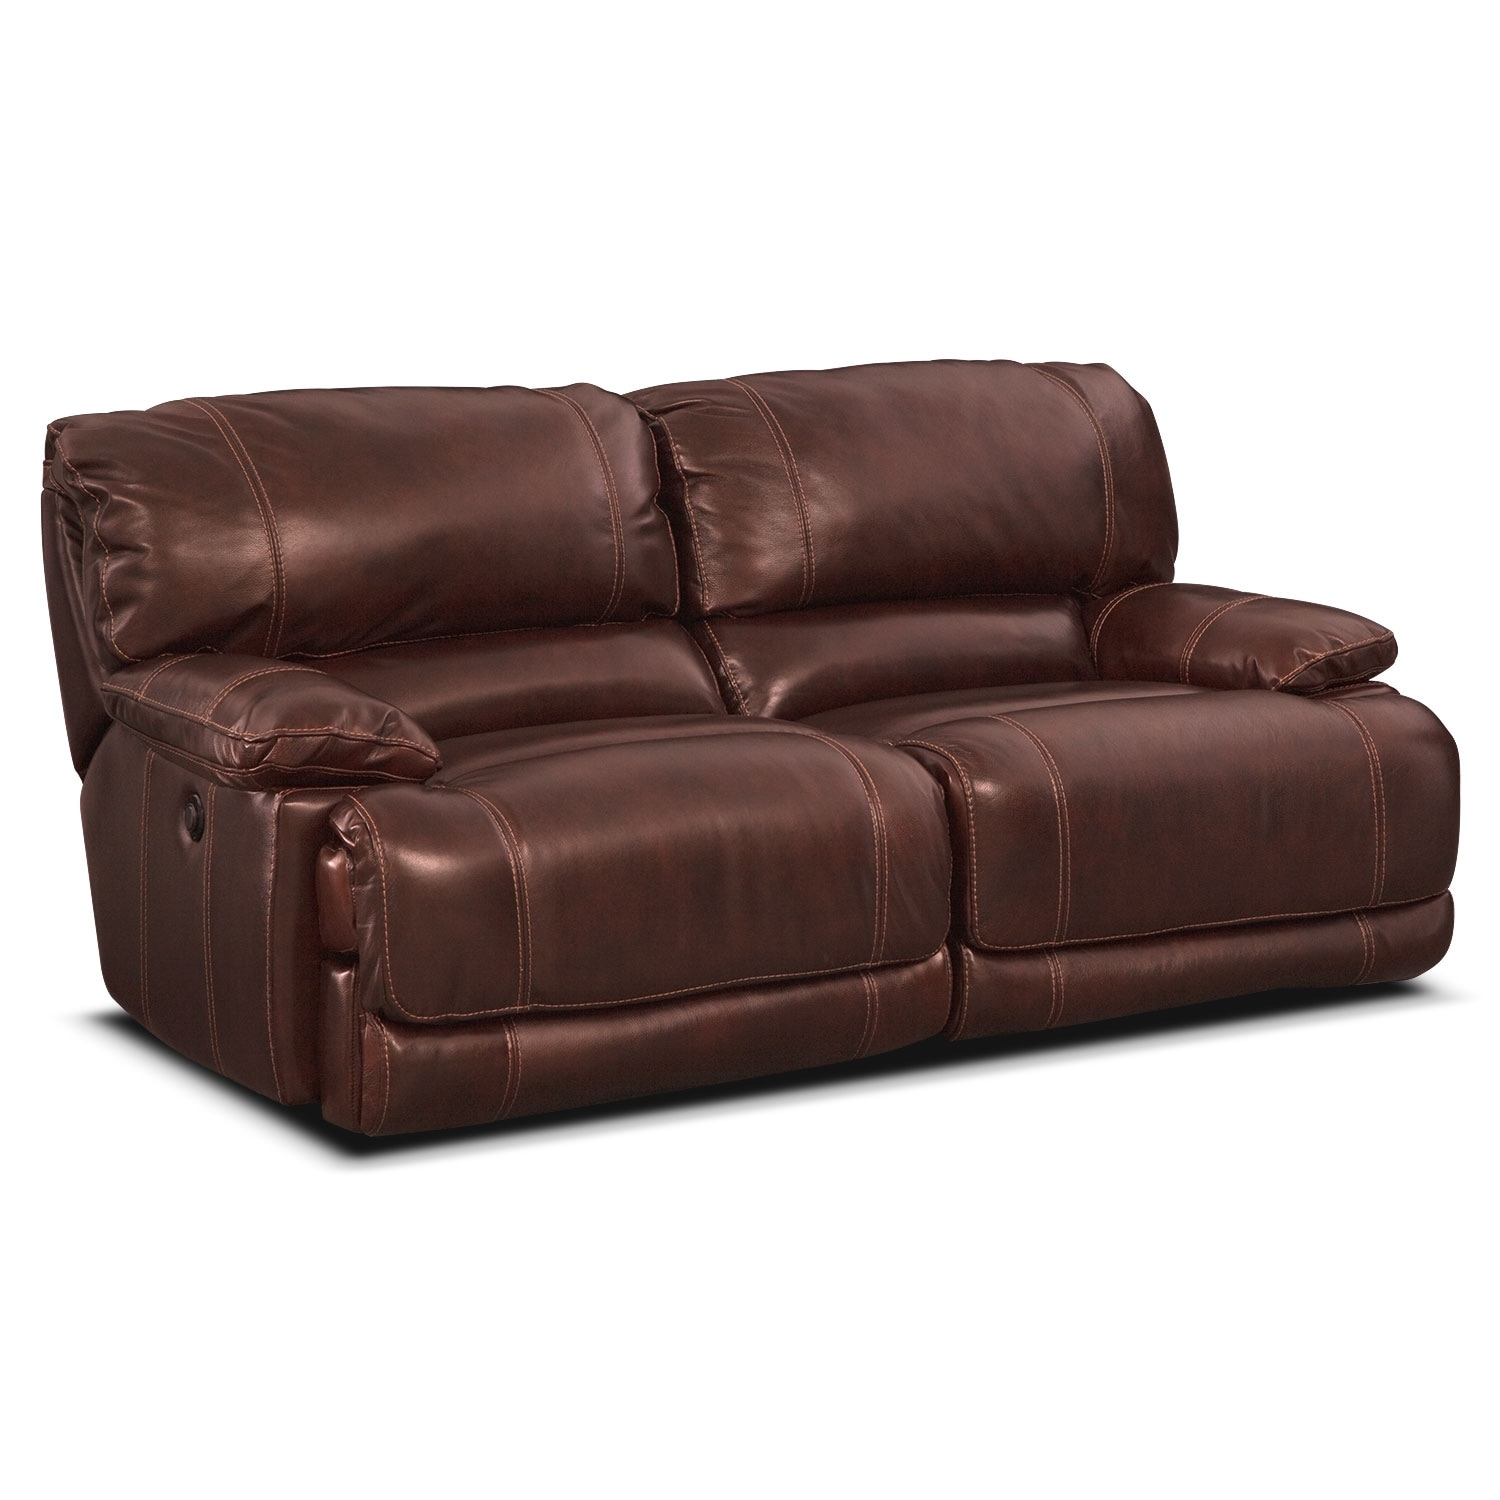 St malo power reclining sofa burgundy american for Signature furniture